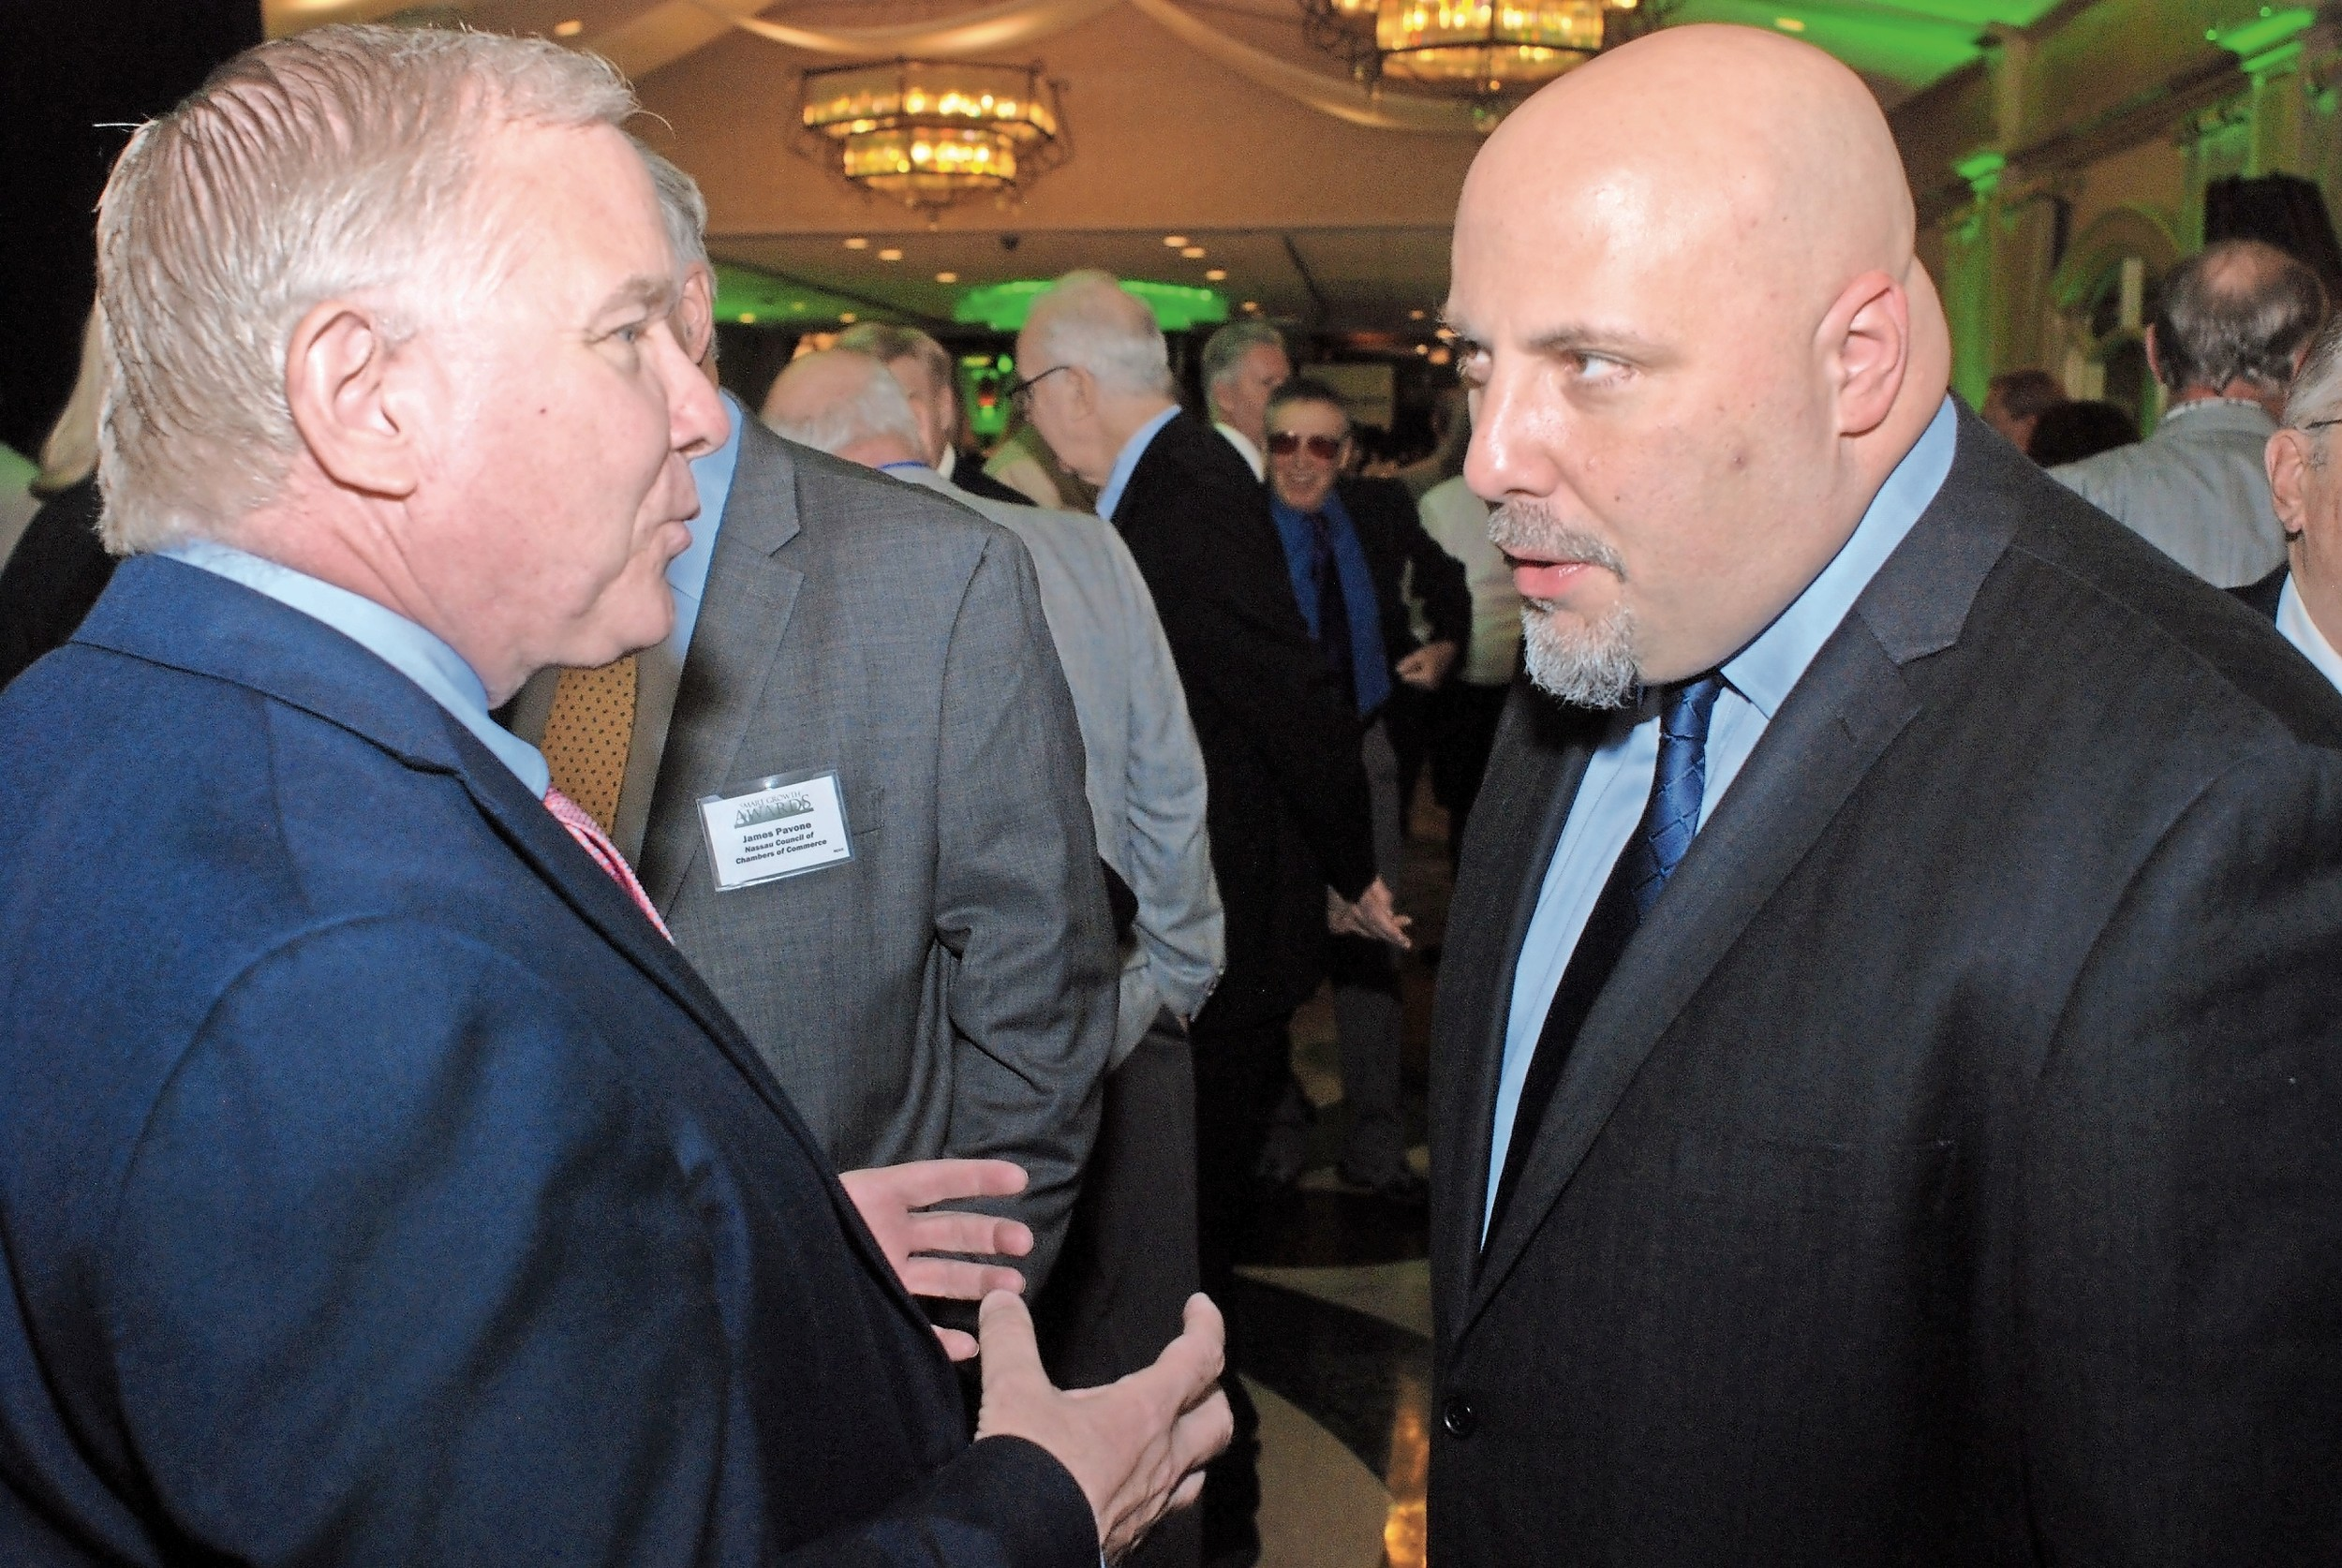 Former Village of Freeport Trustee Don Miller, left, chatted with Vision Long Island Director Eric Alexander.